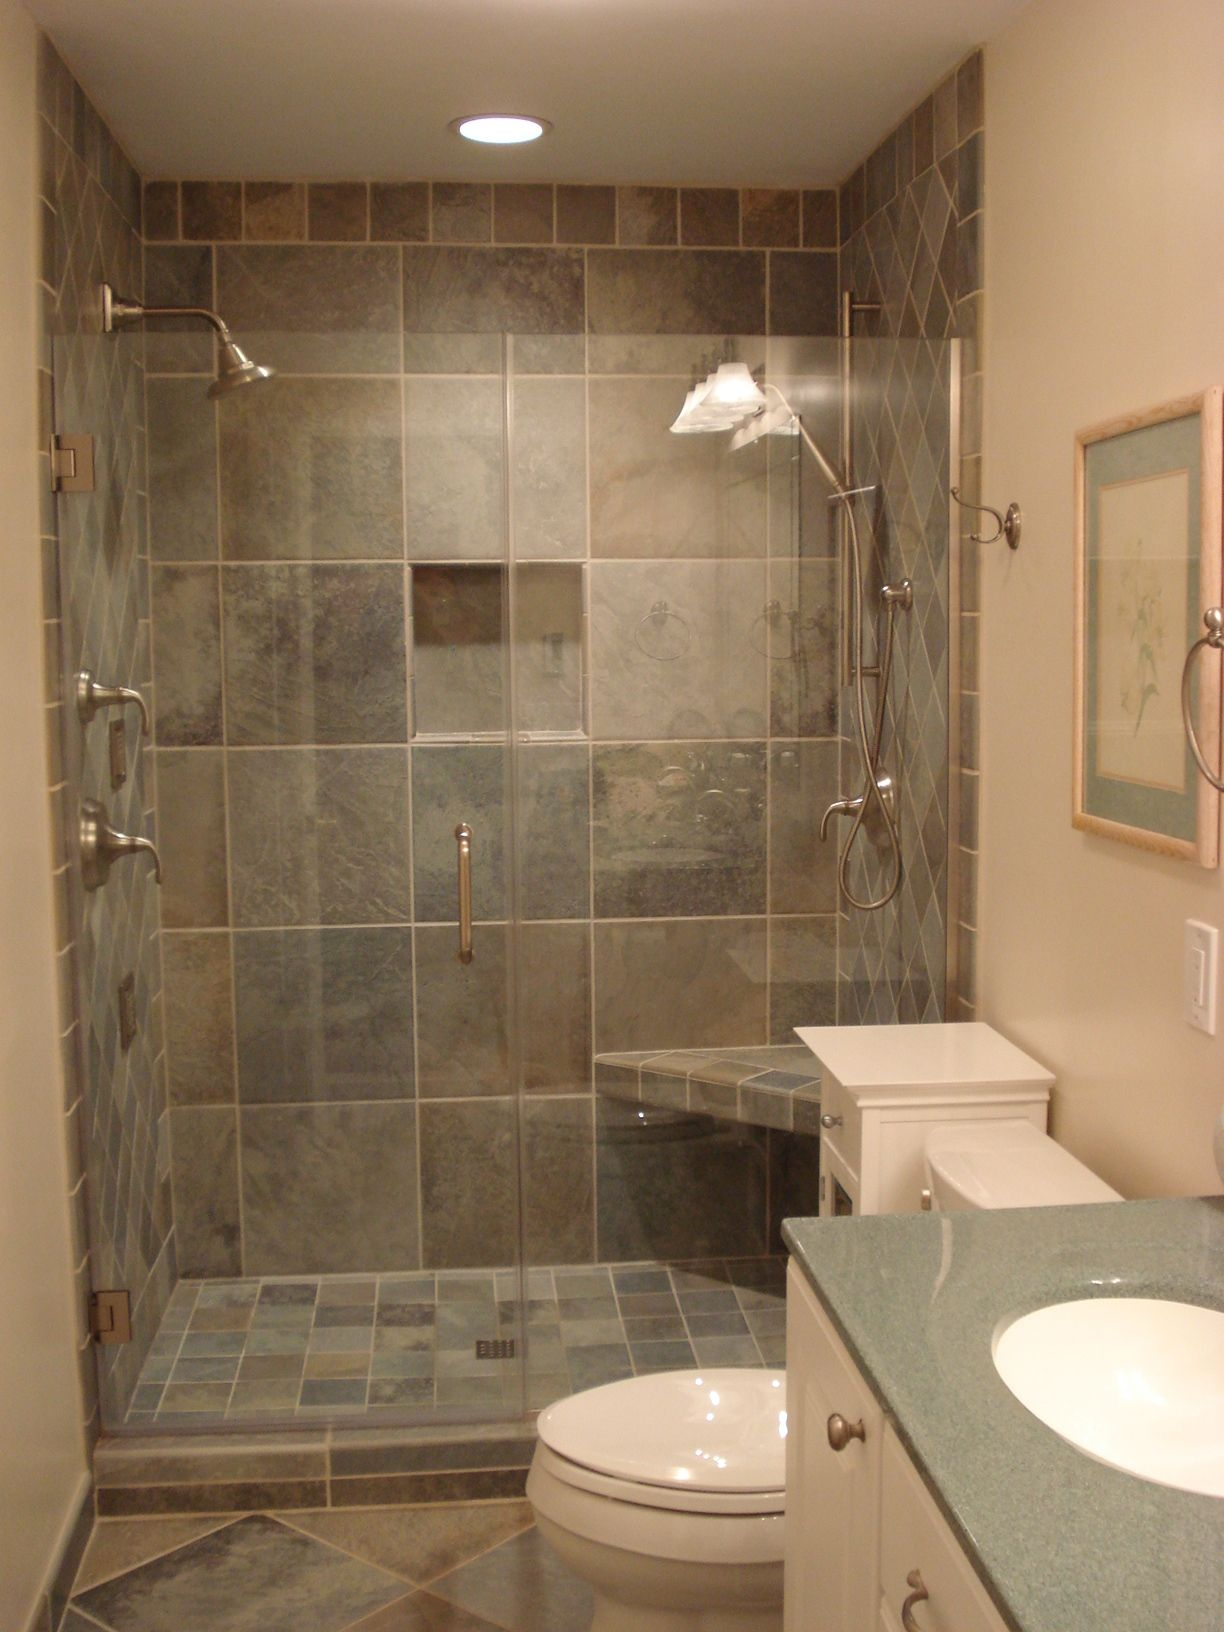 Renovating Small Bathroom It Is Common For A Small Room To Be Designed In White Interior